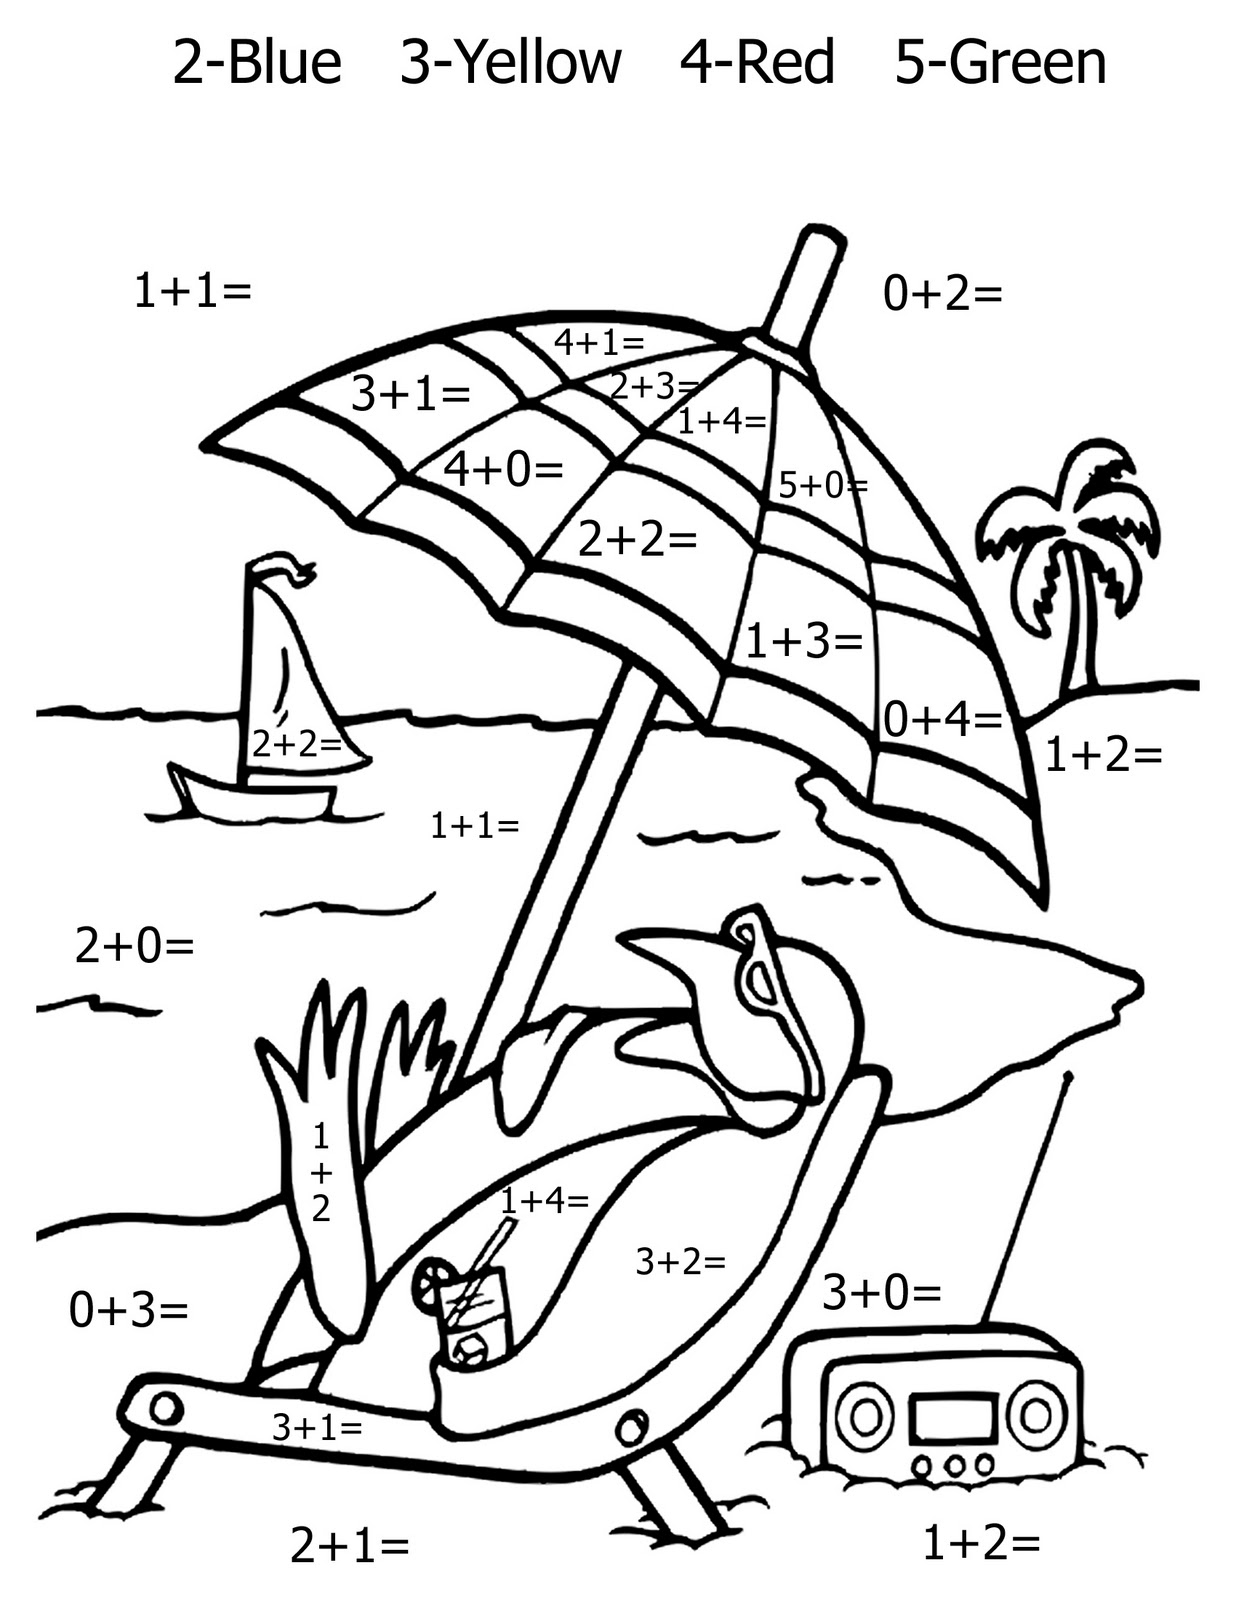 coloring worksheets easy fish coloring page super simple worksheets easy coloring